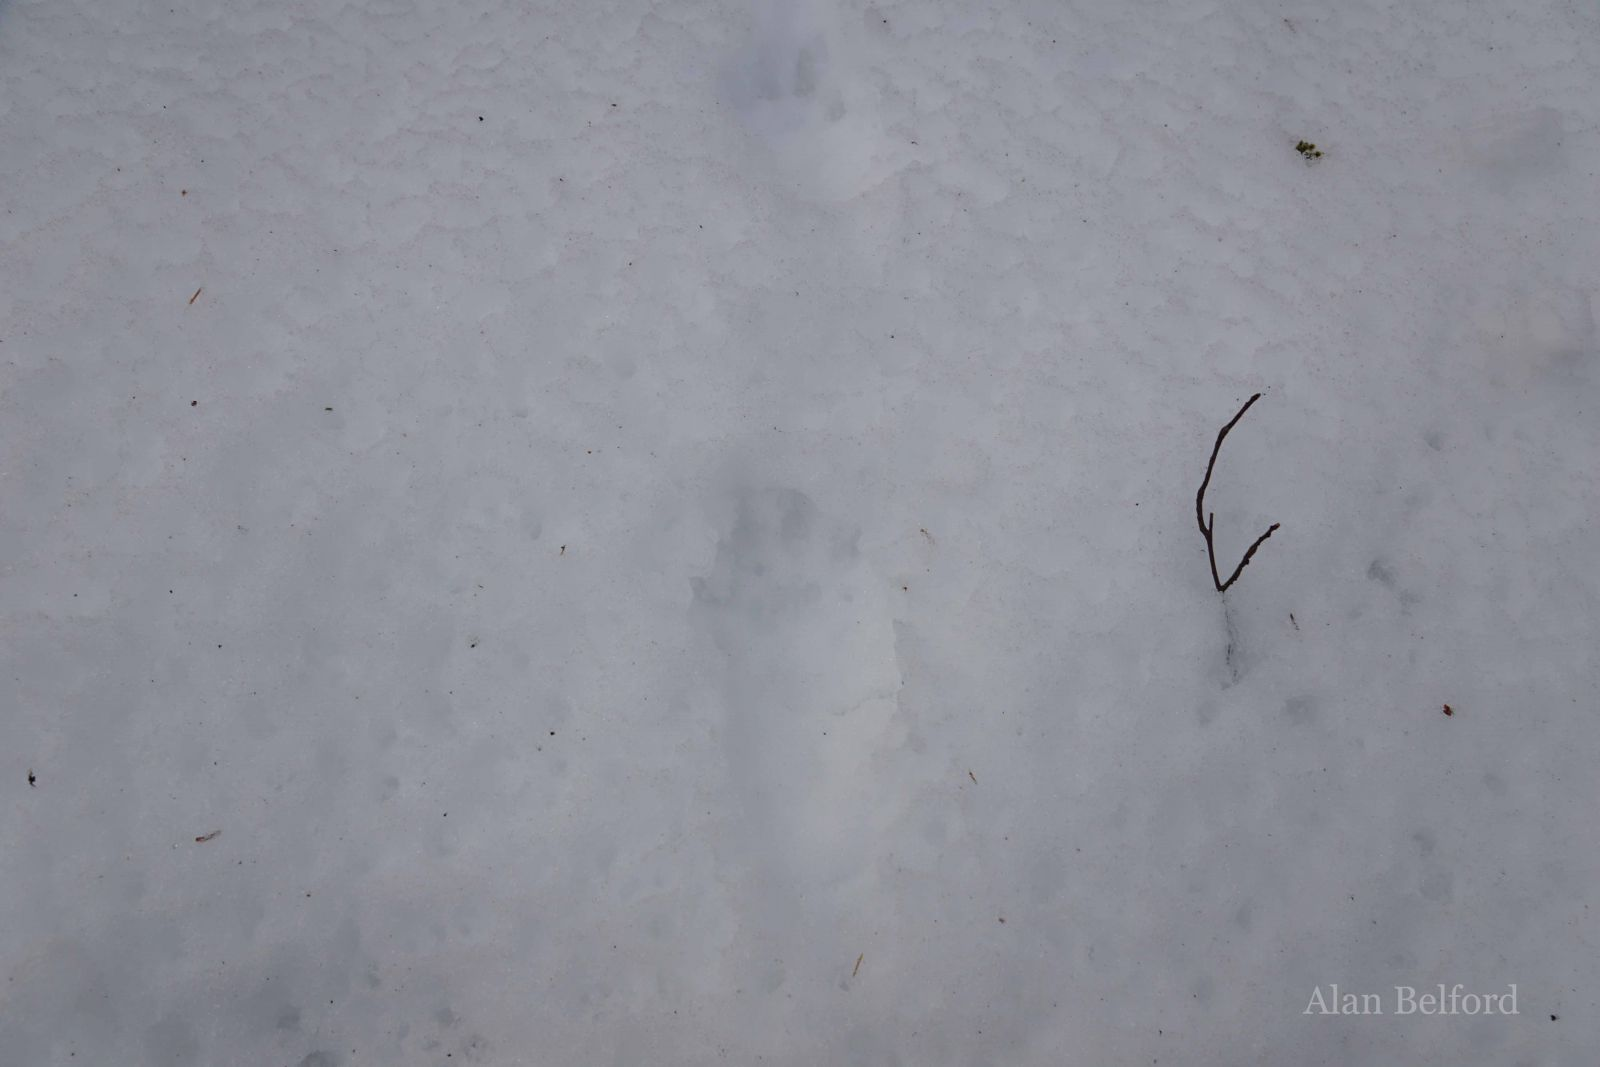 I was excited to find fisher tracks during one of our recent skis.